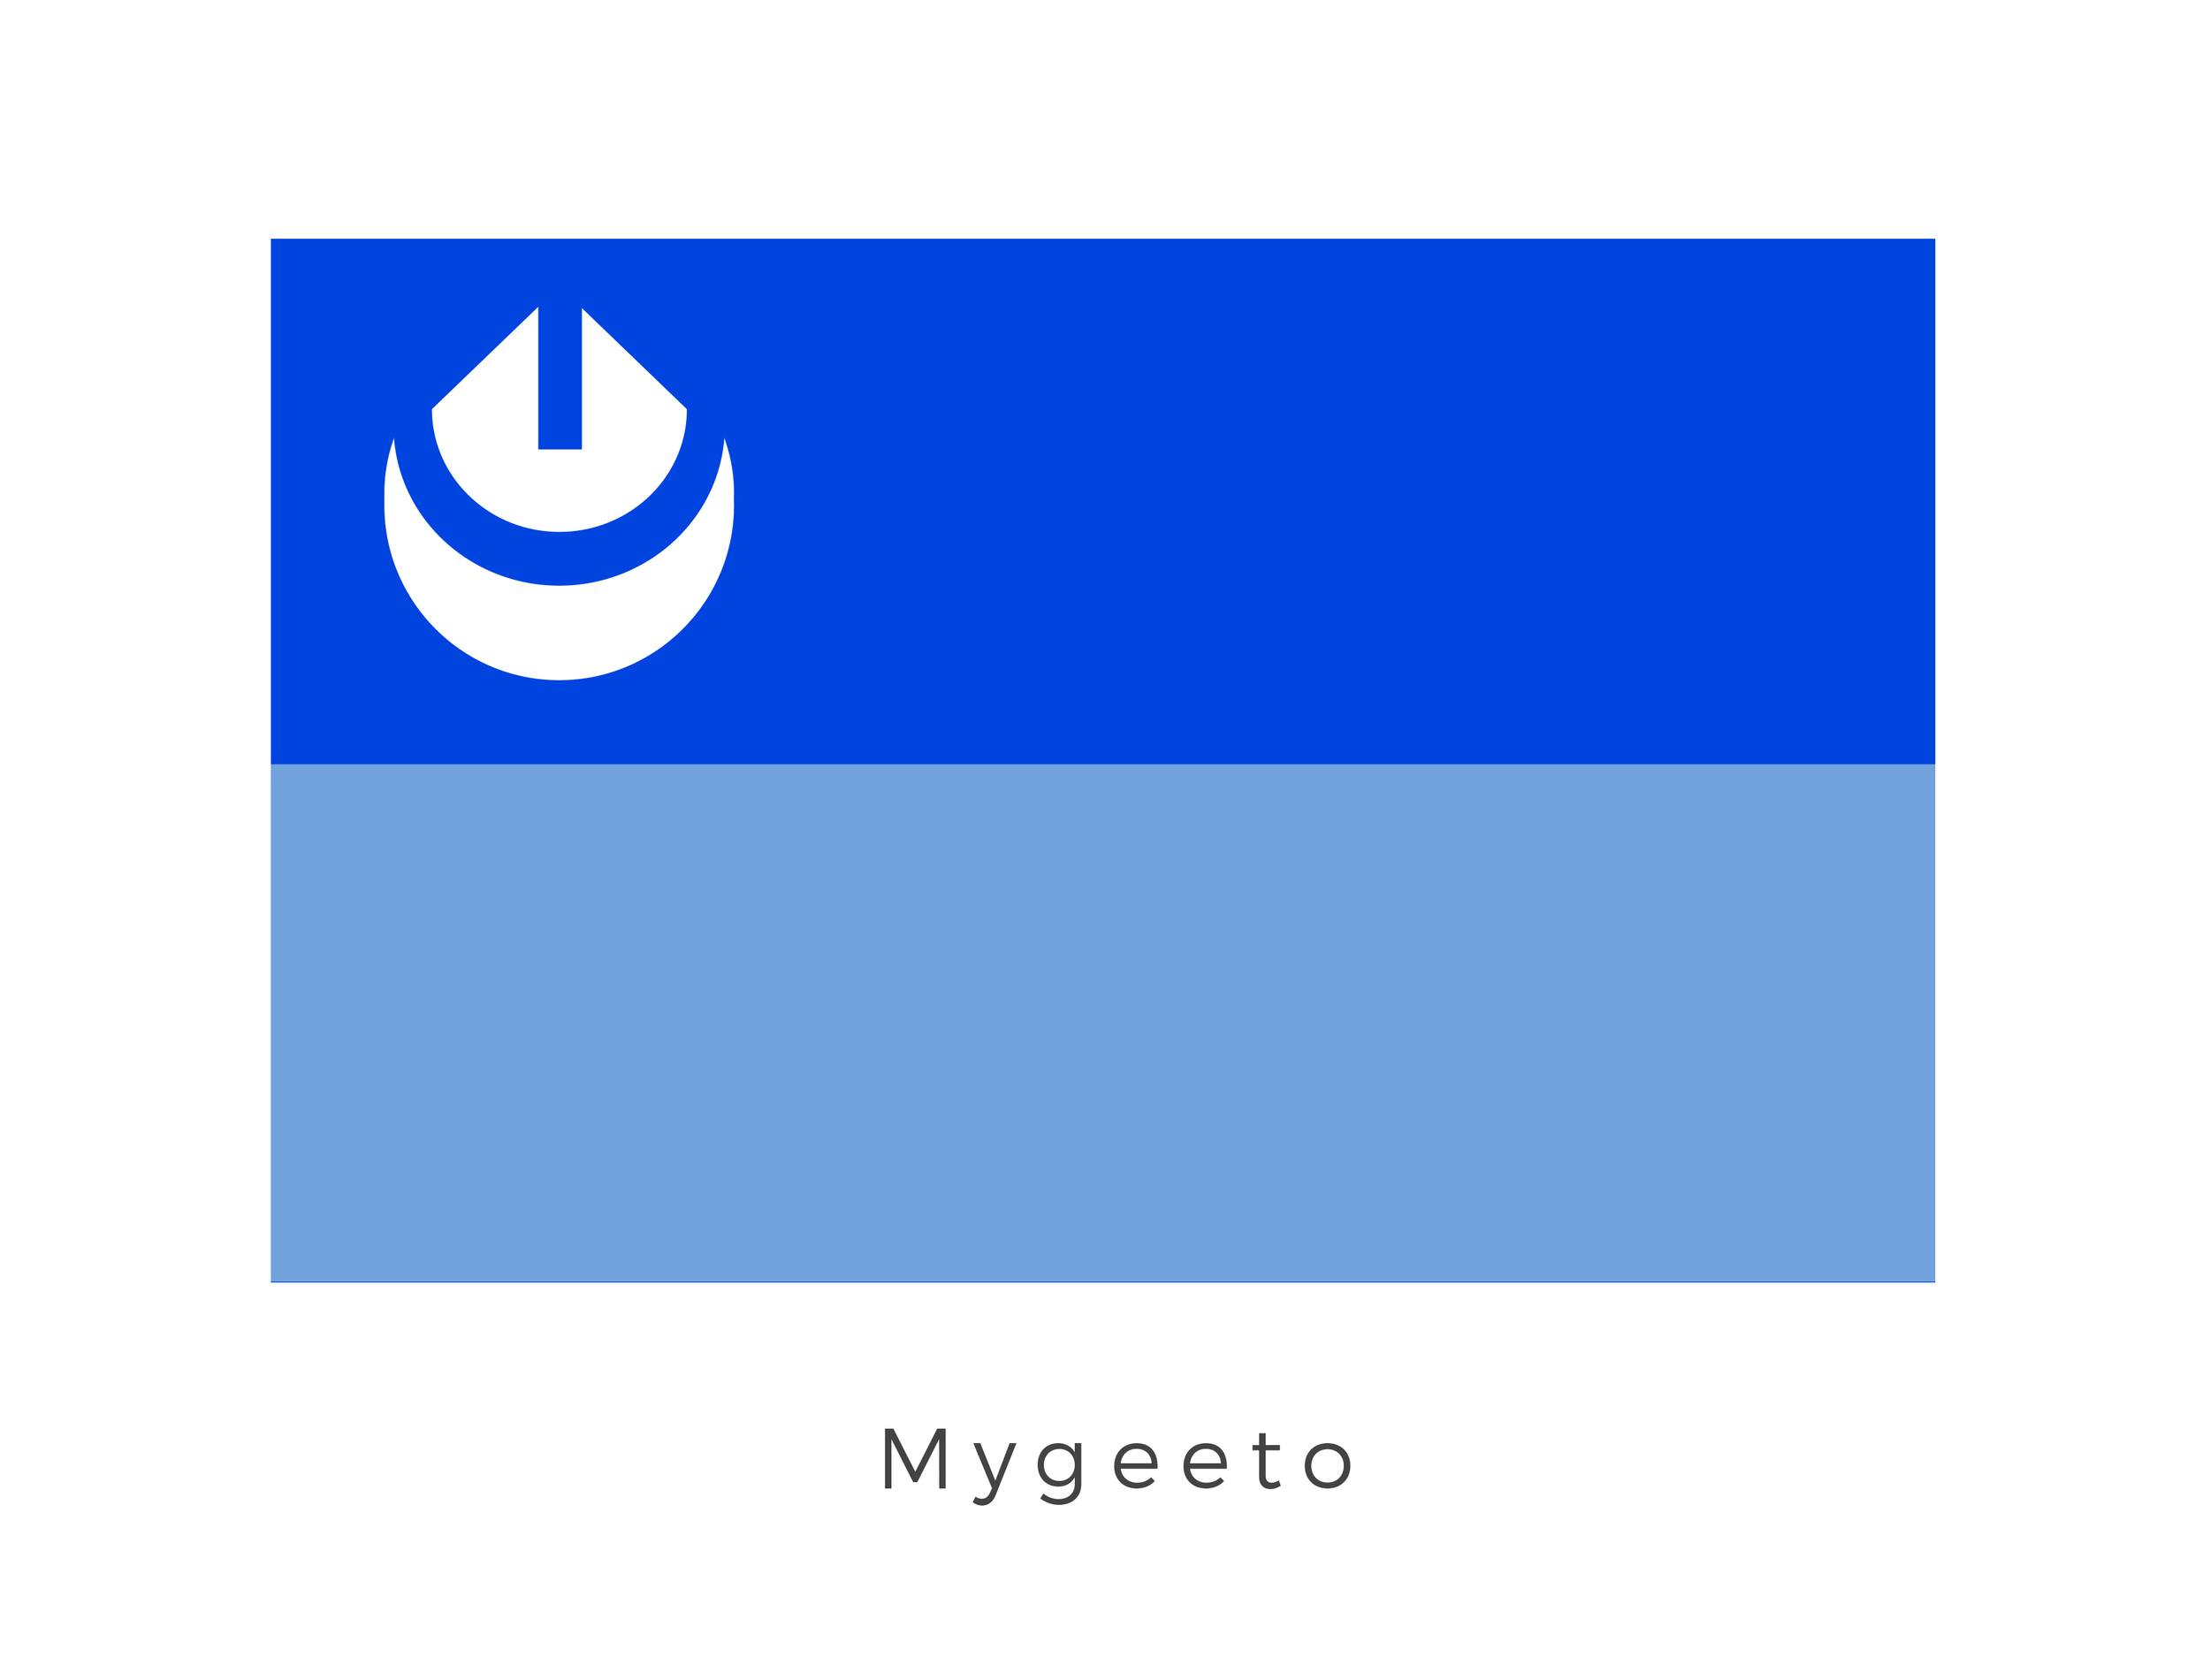 Mygeeto  was a wealthy InterGalactic Banking Clan colony between Ord Biniir and Morishim under control of the Confederacy of Independent Systems. The InterGalactic Banking Clan (also known as the InterGalactic Bank Clan or the IG Banking Clan and often abbreviated to IGBC or IBC) was one of the Republic's most powerful and influential commerce guilds. It is due to this fact that the Mygeeto flag has the Republics emblem and colours used on its flag despite being connected to elements of the Sith.